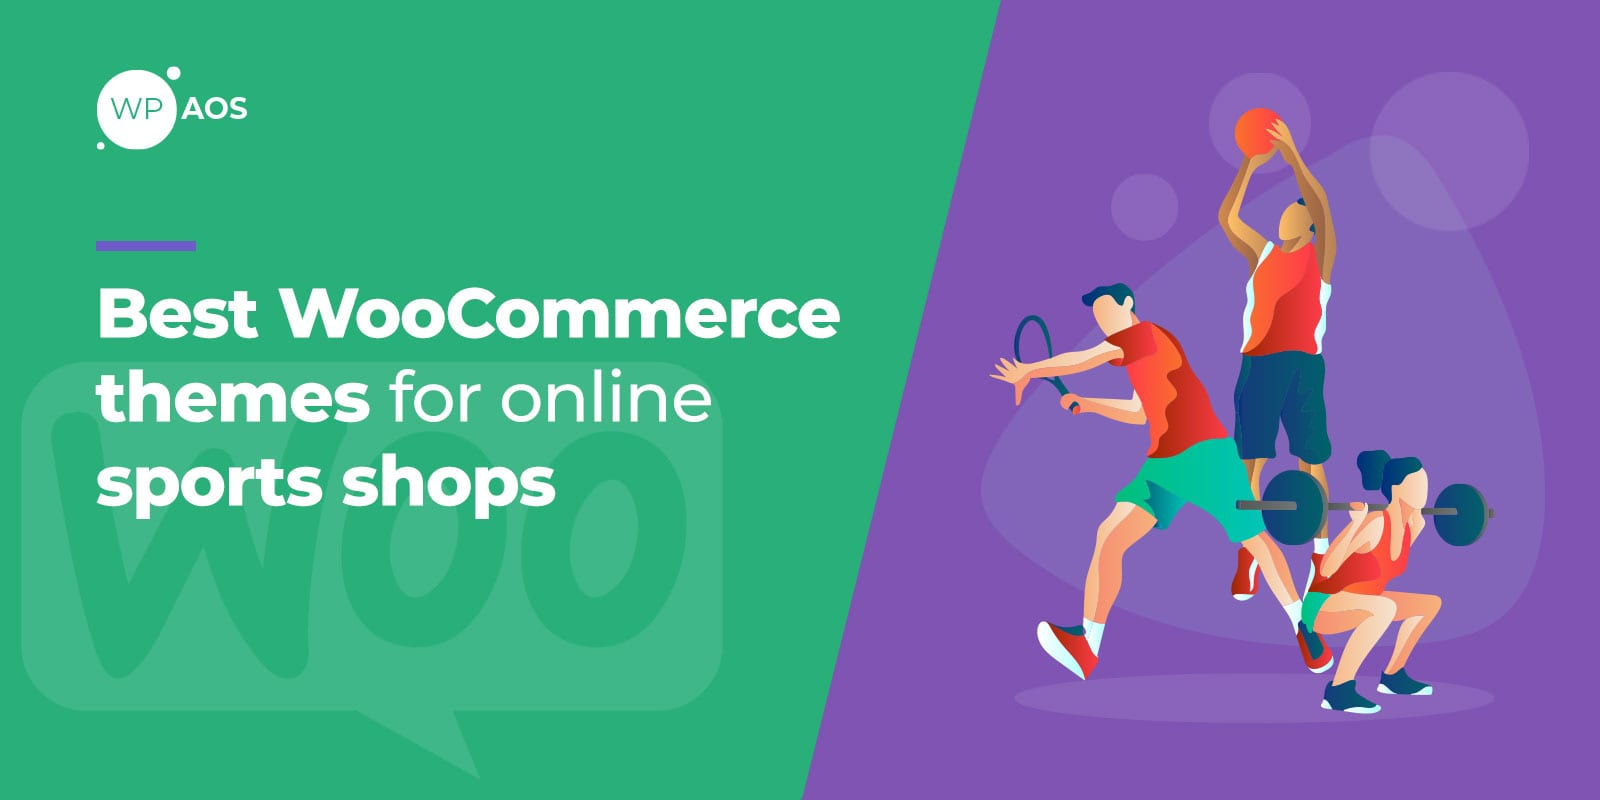 Best WooCommerce Themes for Online Sports Shops, wpaos